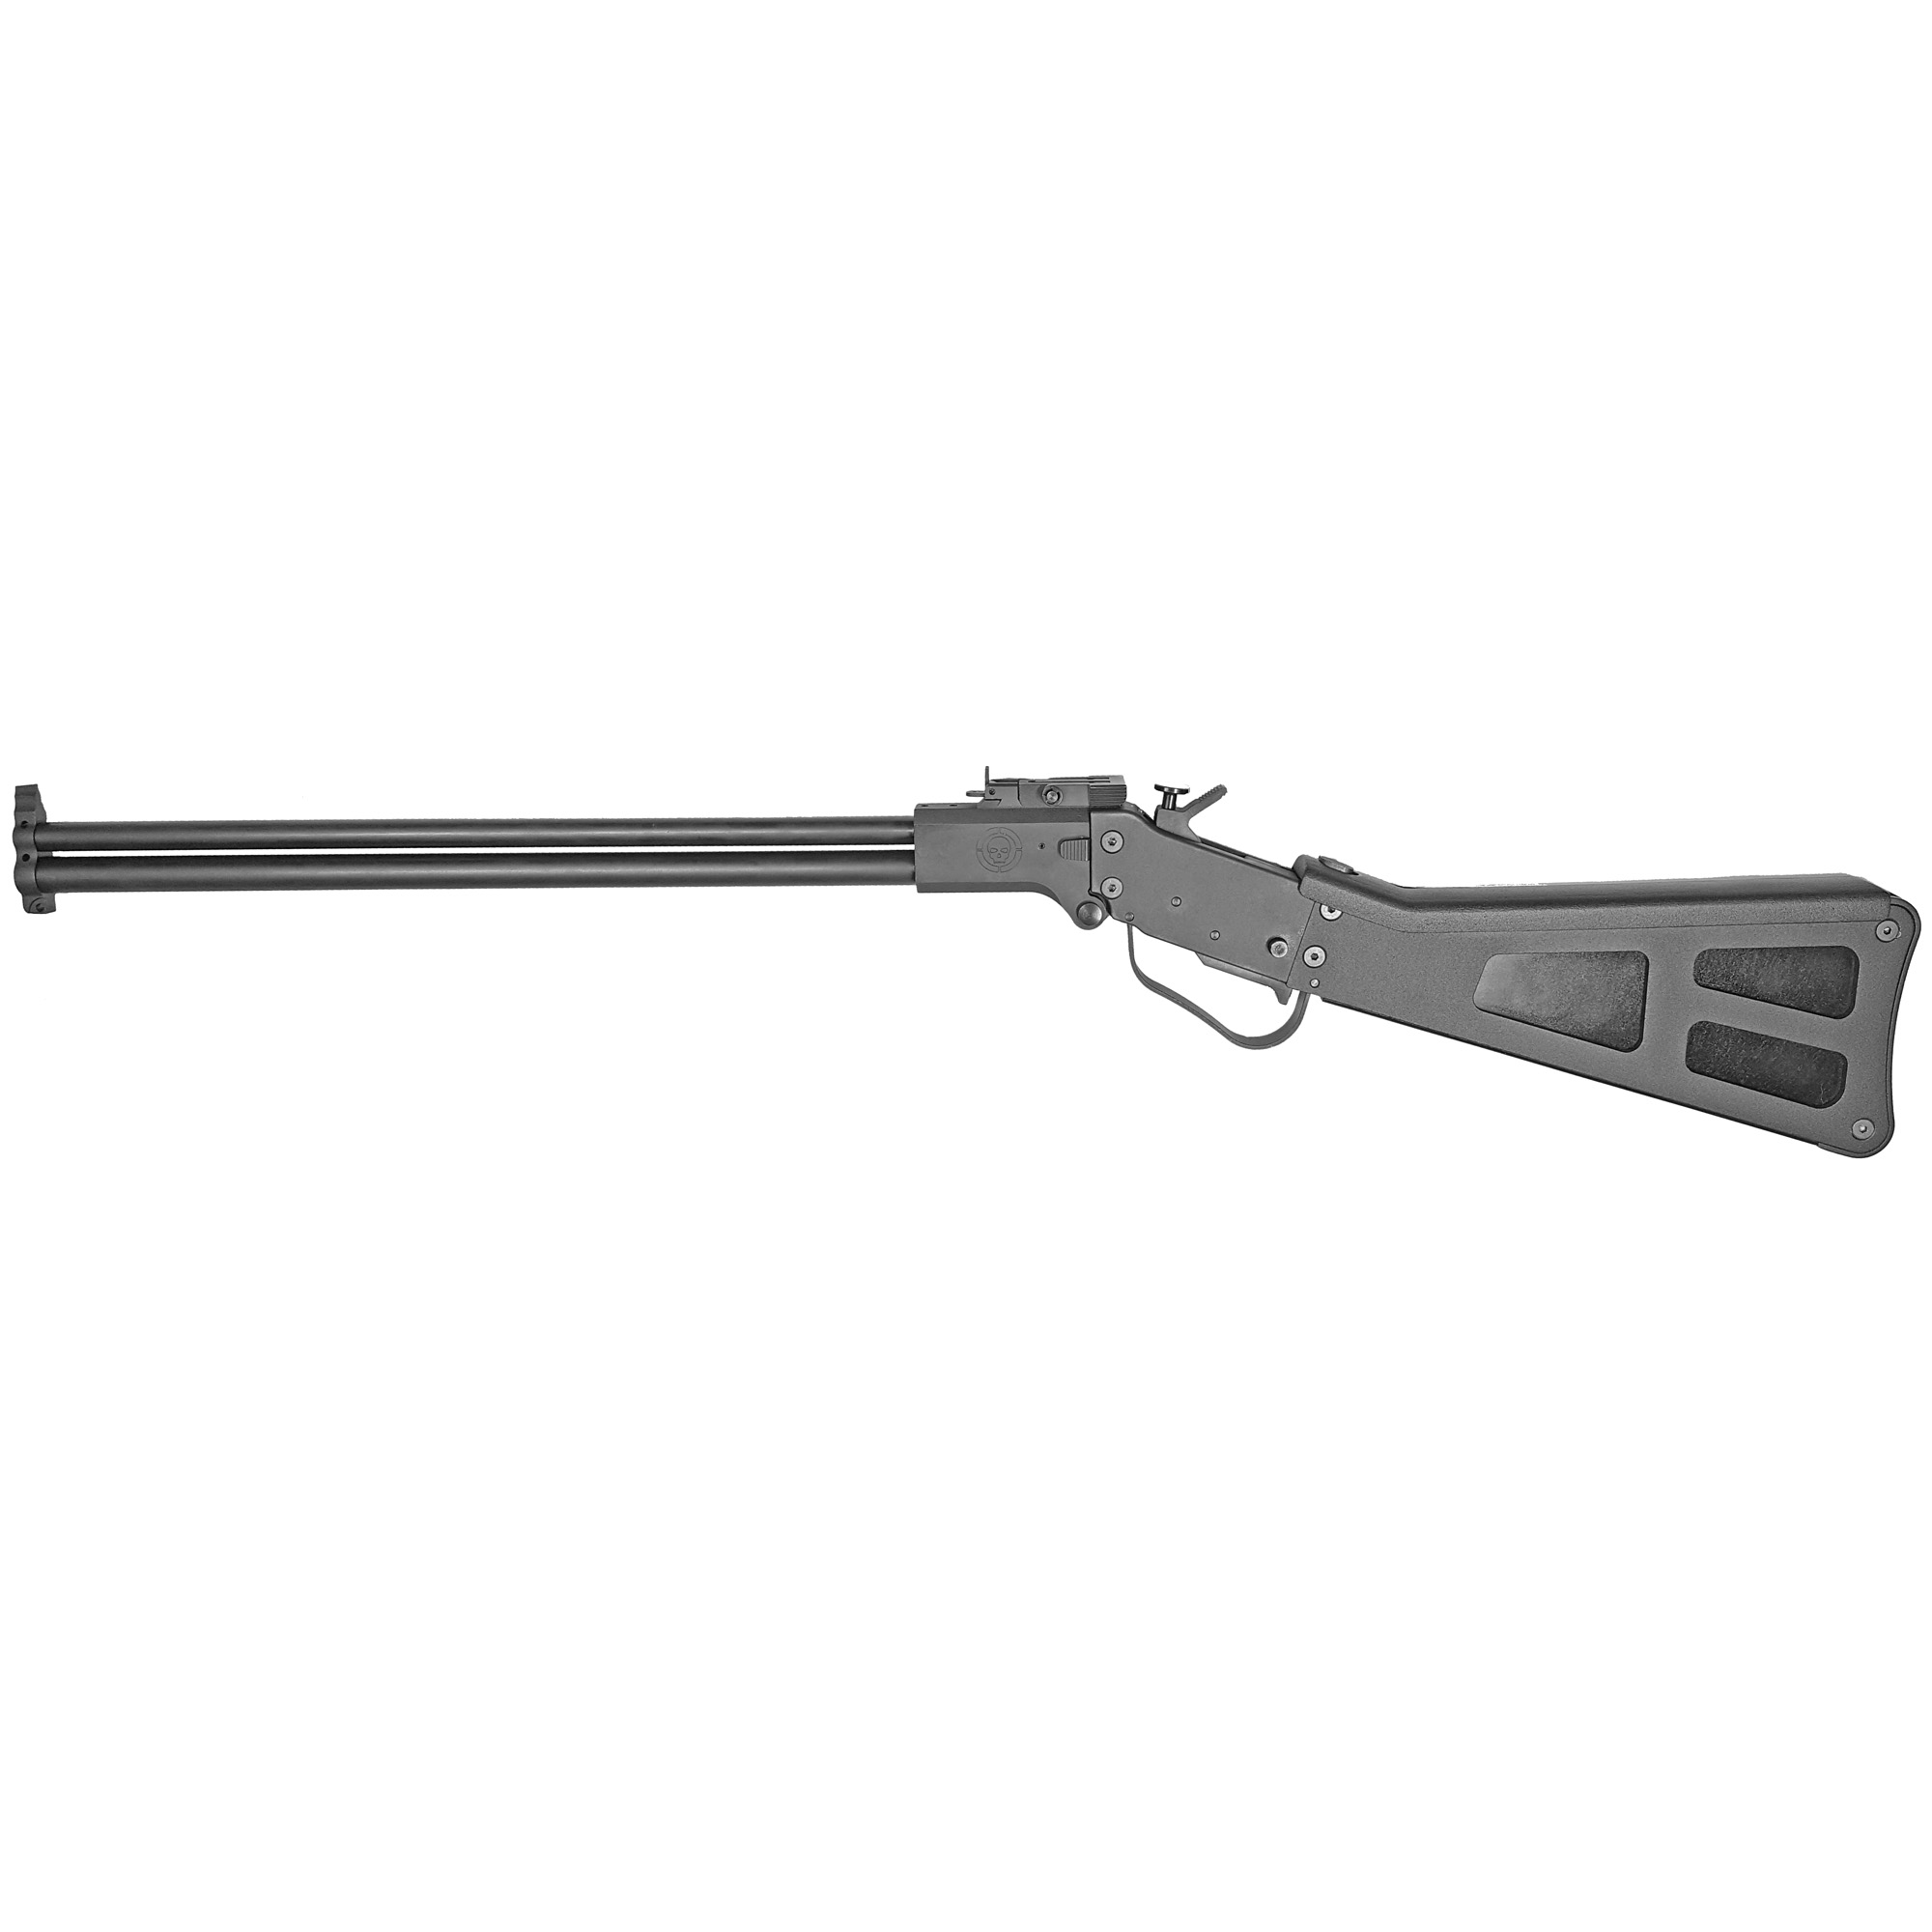 The M6 Takedown is an over/under combo (22WMR/410Ga) made of all steel construction with a blued finish. It has adjustable sights and an AR-style takedown pin for quick breakdown.